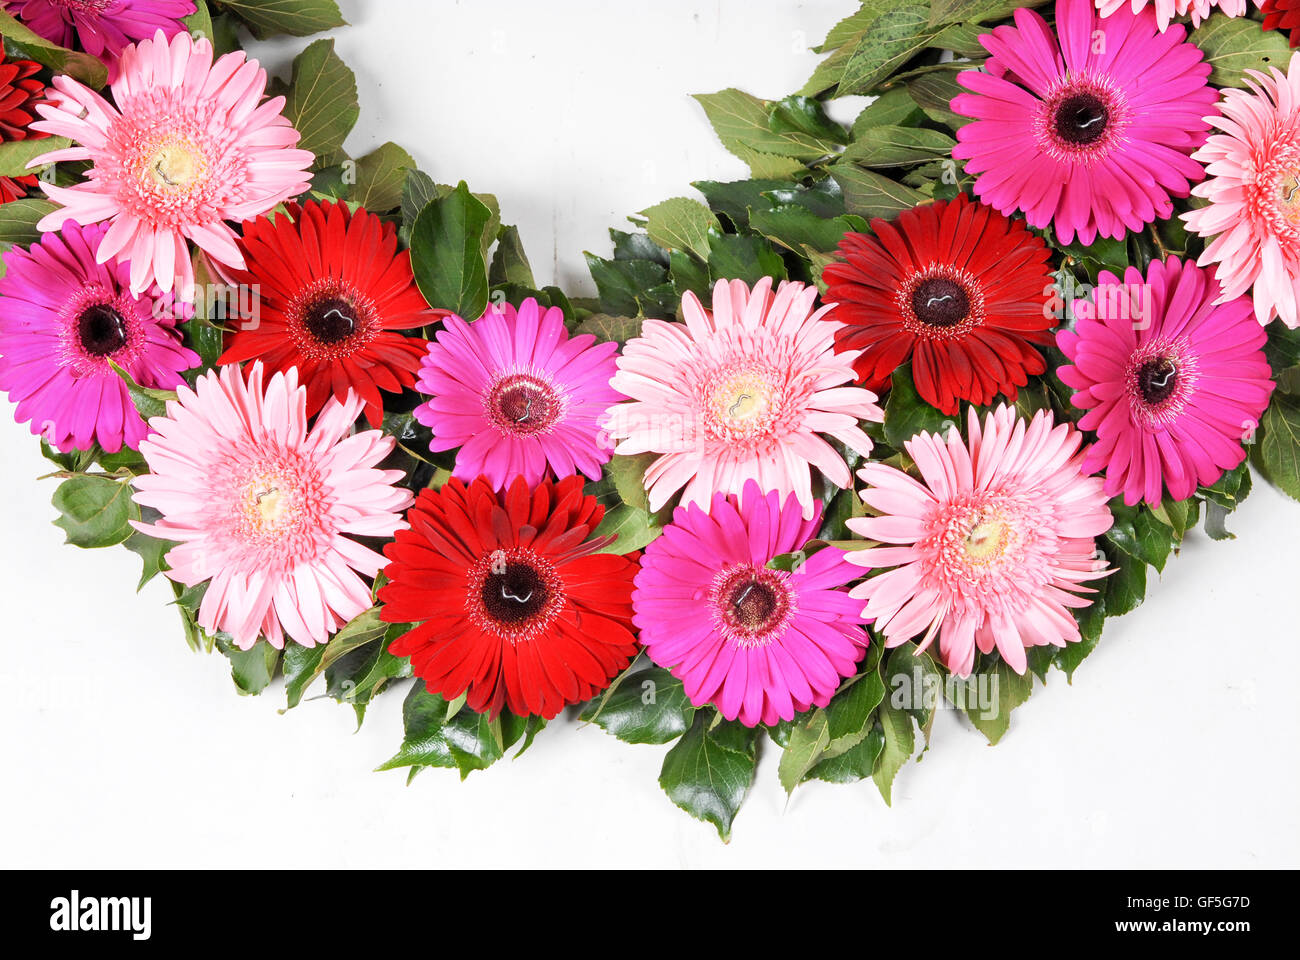 Flower bouquet on white background - Stock Image